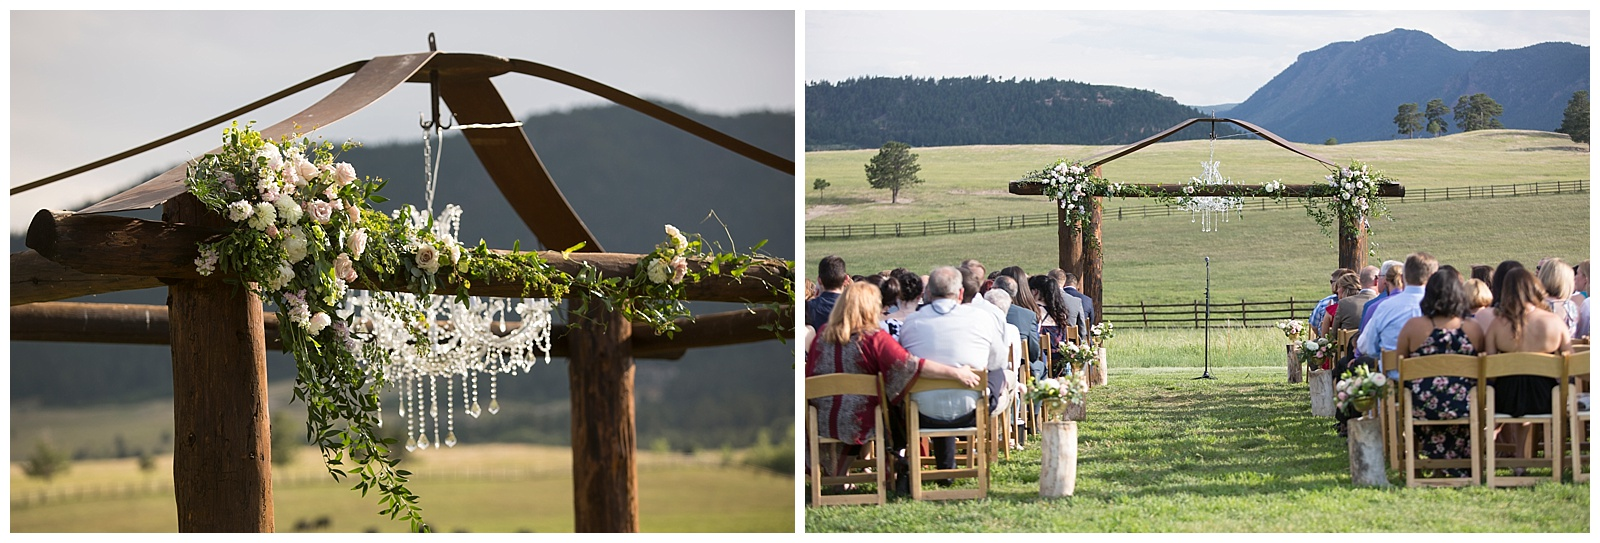 Spruce Mountain Ranch Wedding 7.jpg